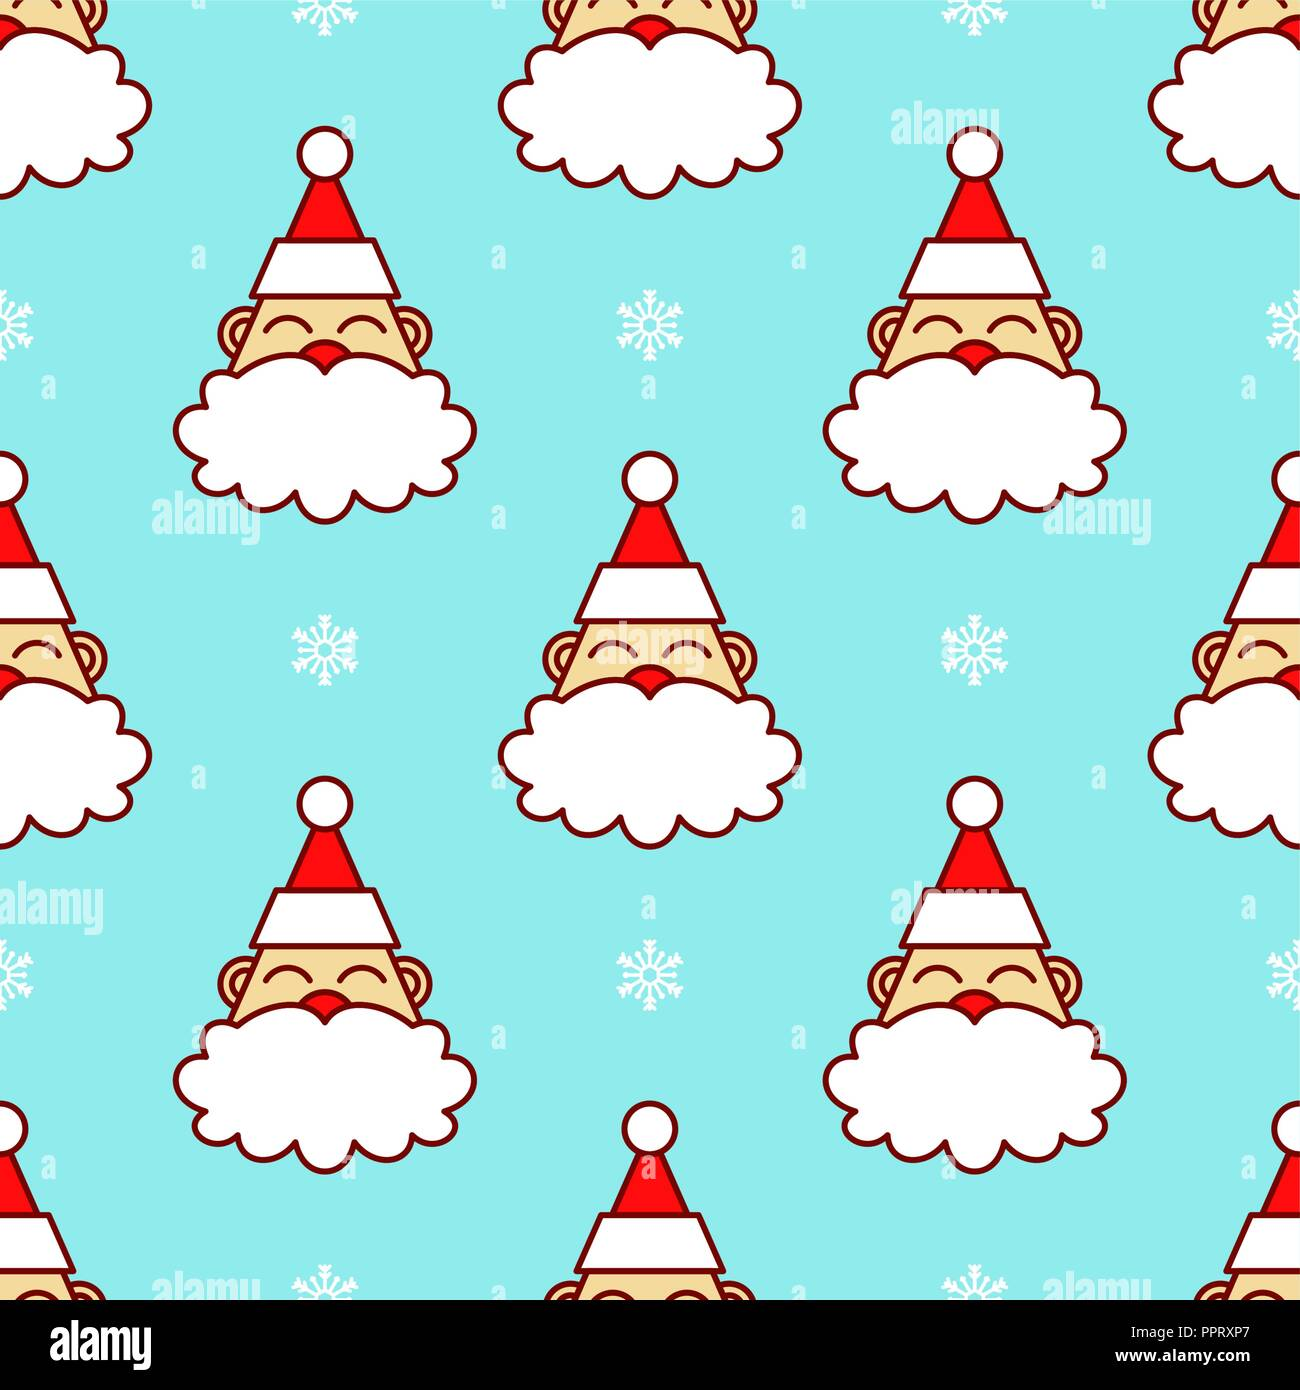 Santa Claus Head In Snow Seamless Pattern This Cute Pattern Is Good